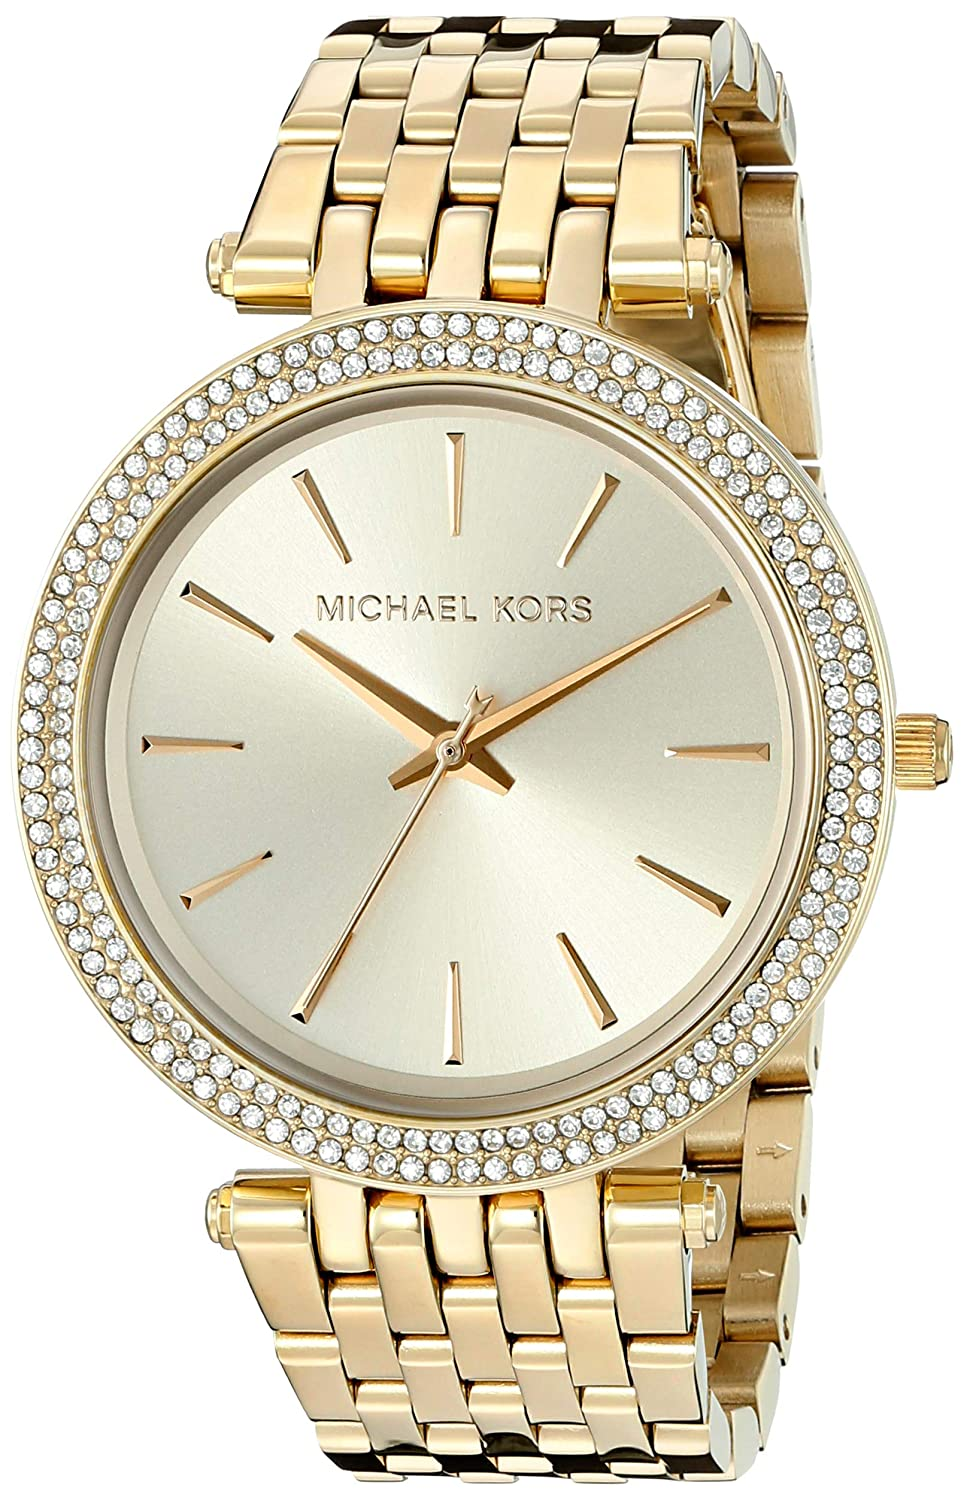 354ea02dc4b1 Amazon.com  Michael Kors Women s Darci Gold-Tone Watch MK3191  Michael Kors   Watches